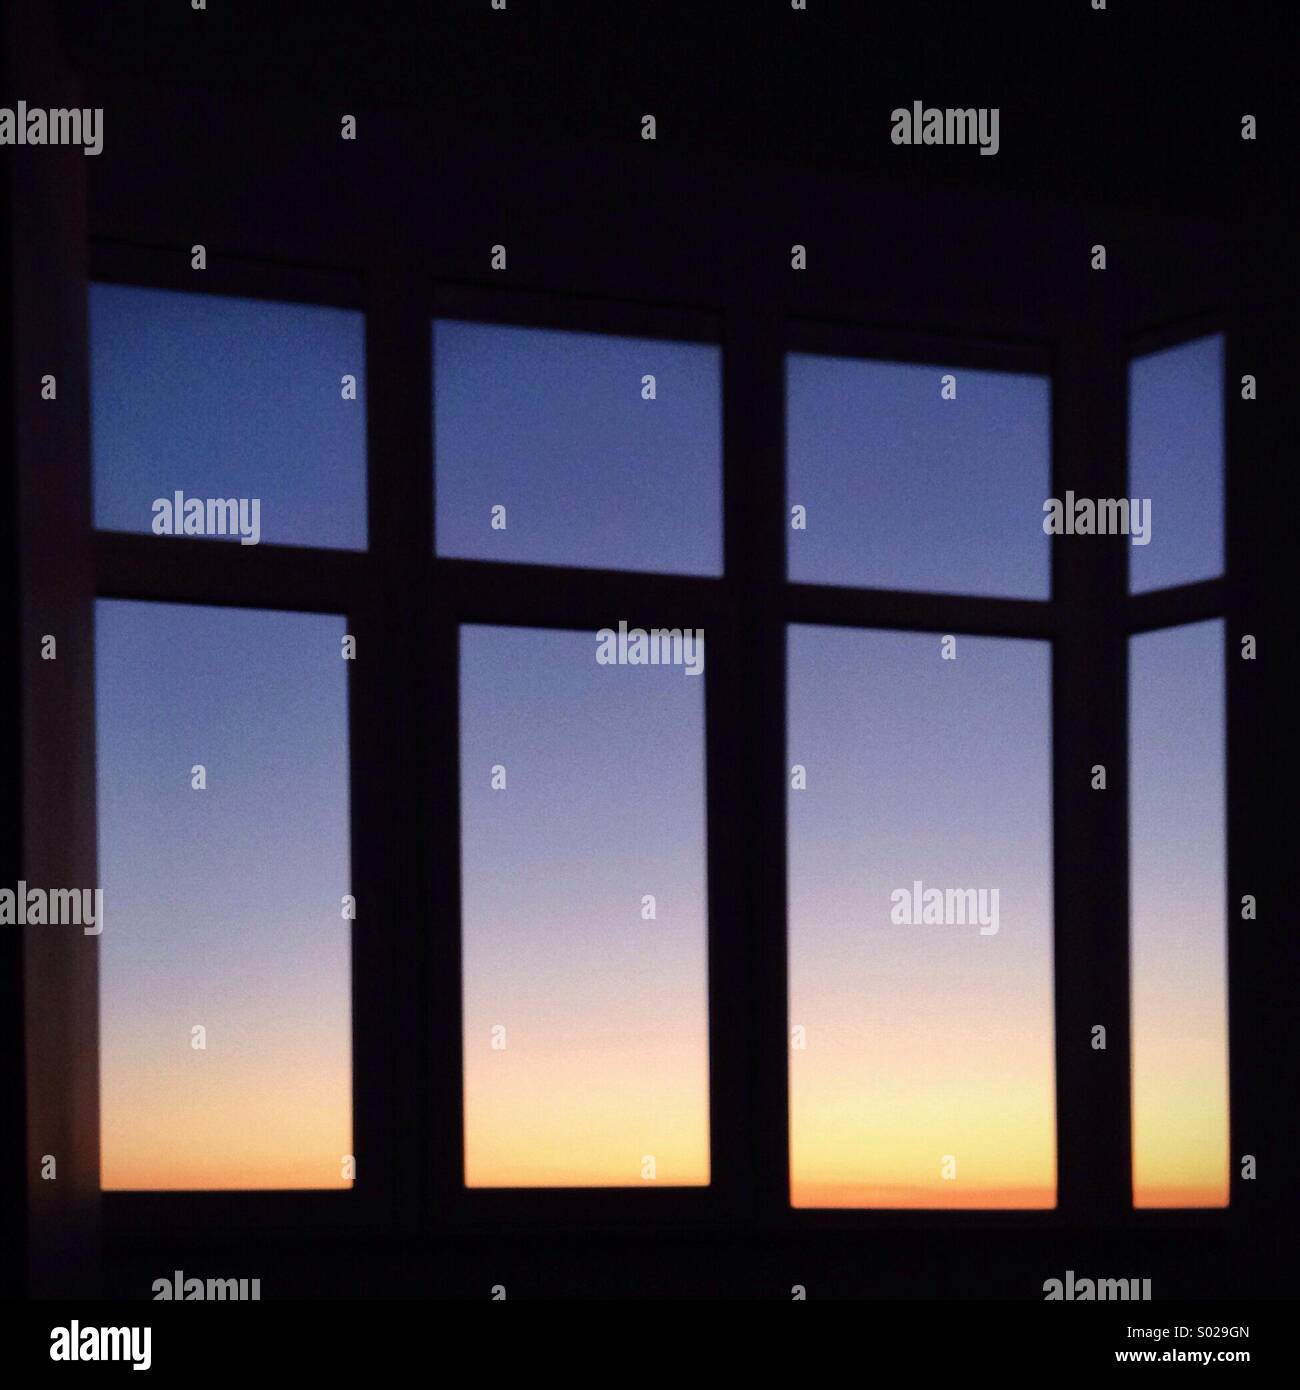 Sunset sky in window - Stock Image